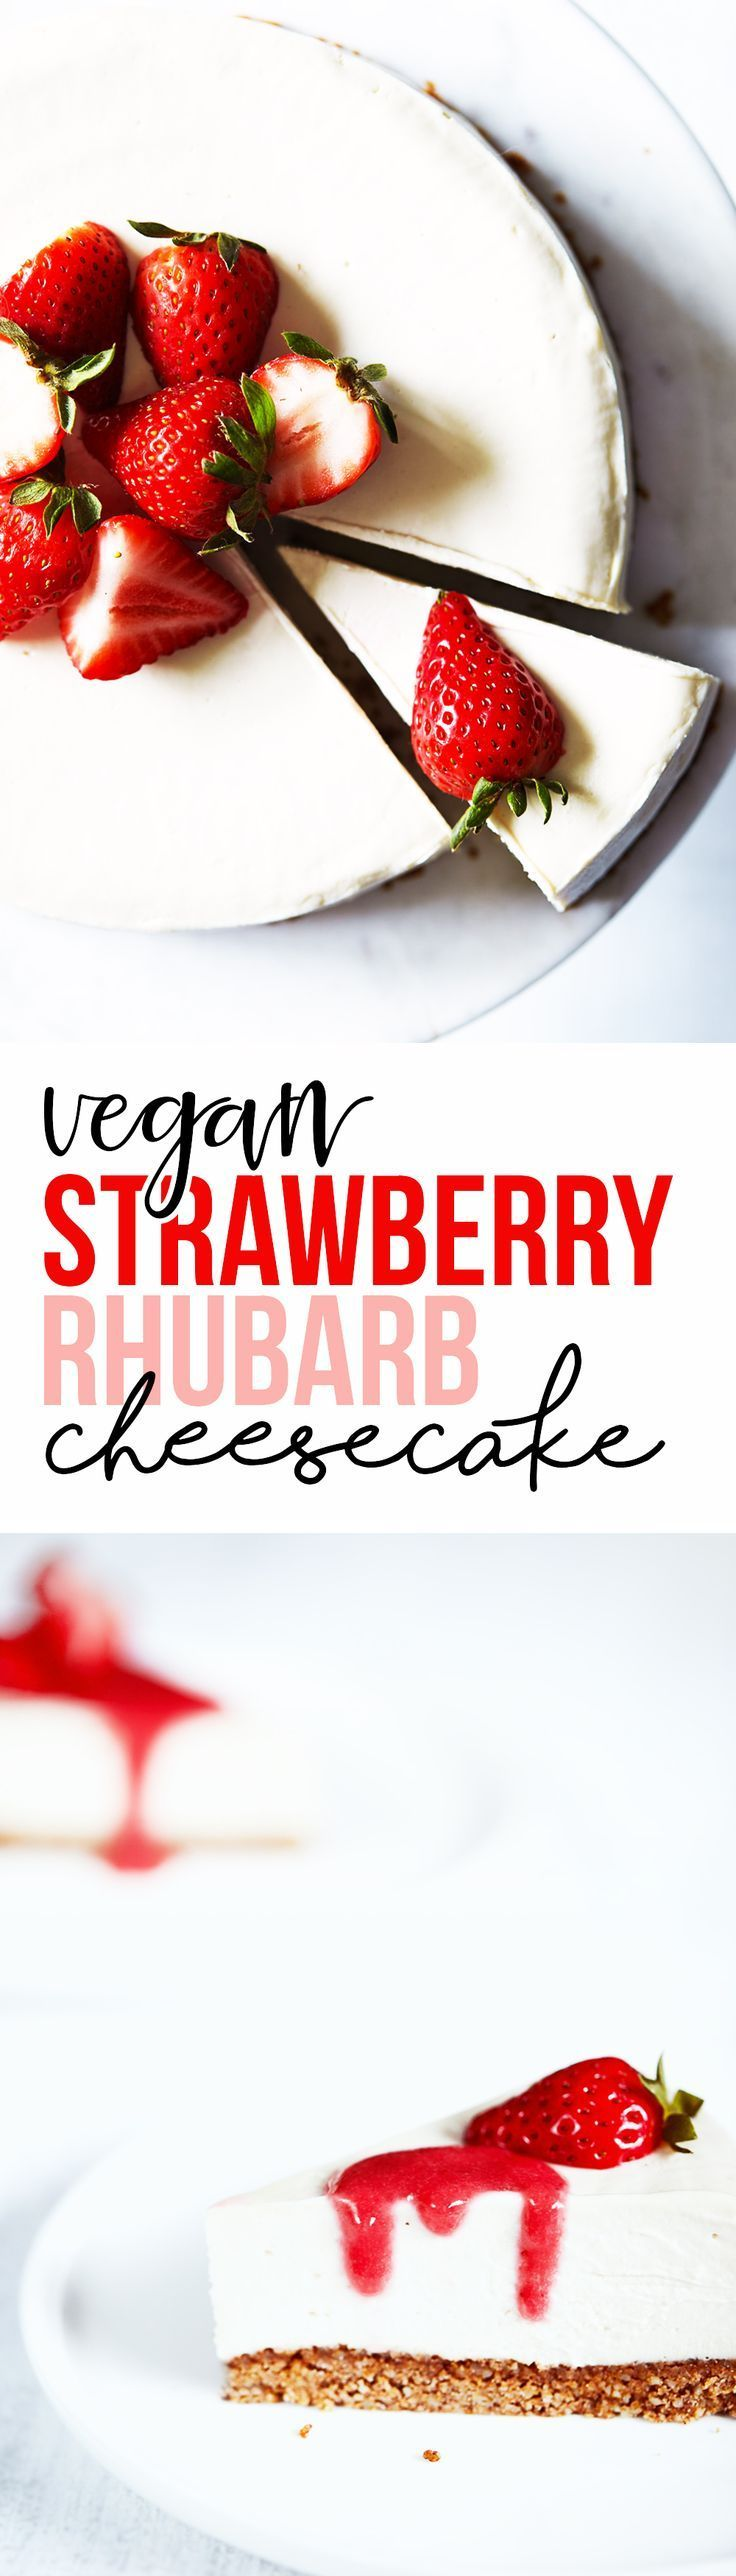 A creamy dairy-free cheesecake set atop a healthy, homemade graham cracker crust. Serve with strawberry rhubarb sauce and fresh berries. Tastes like the real deal! Refined sugar free. Vegan & Gluten Free.